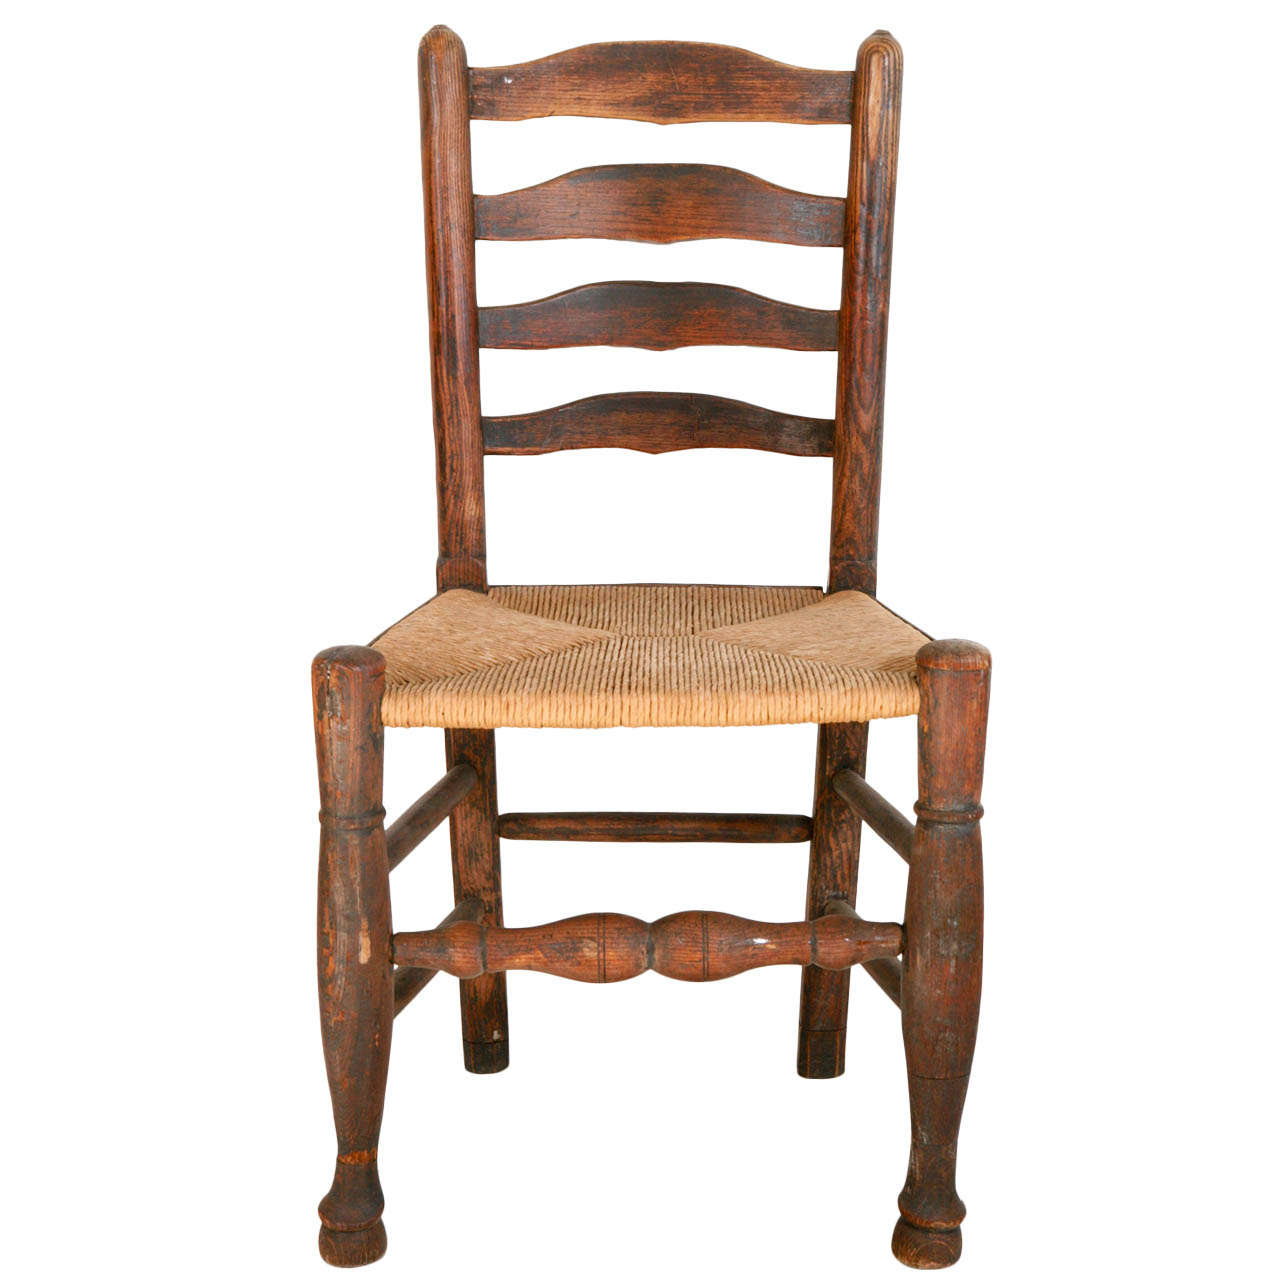 Turn of the century ladder back and woven seat chair at Ladder back chairs